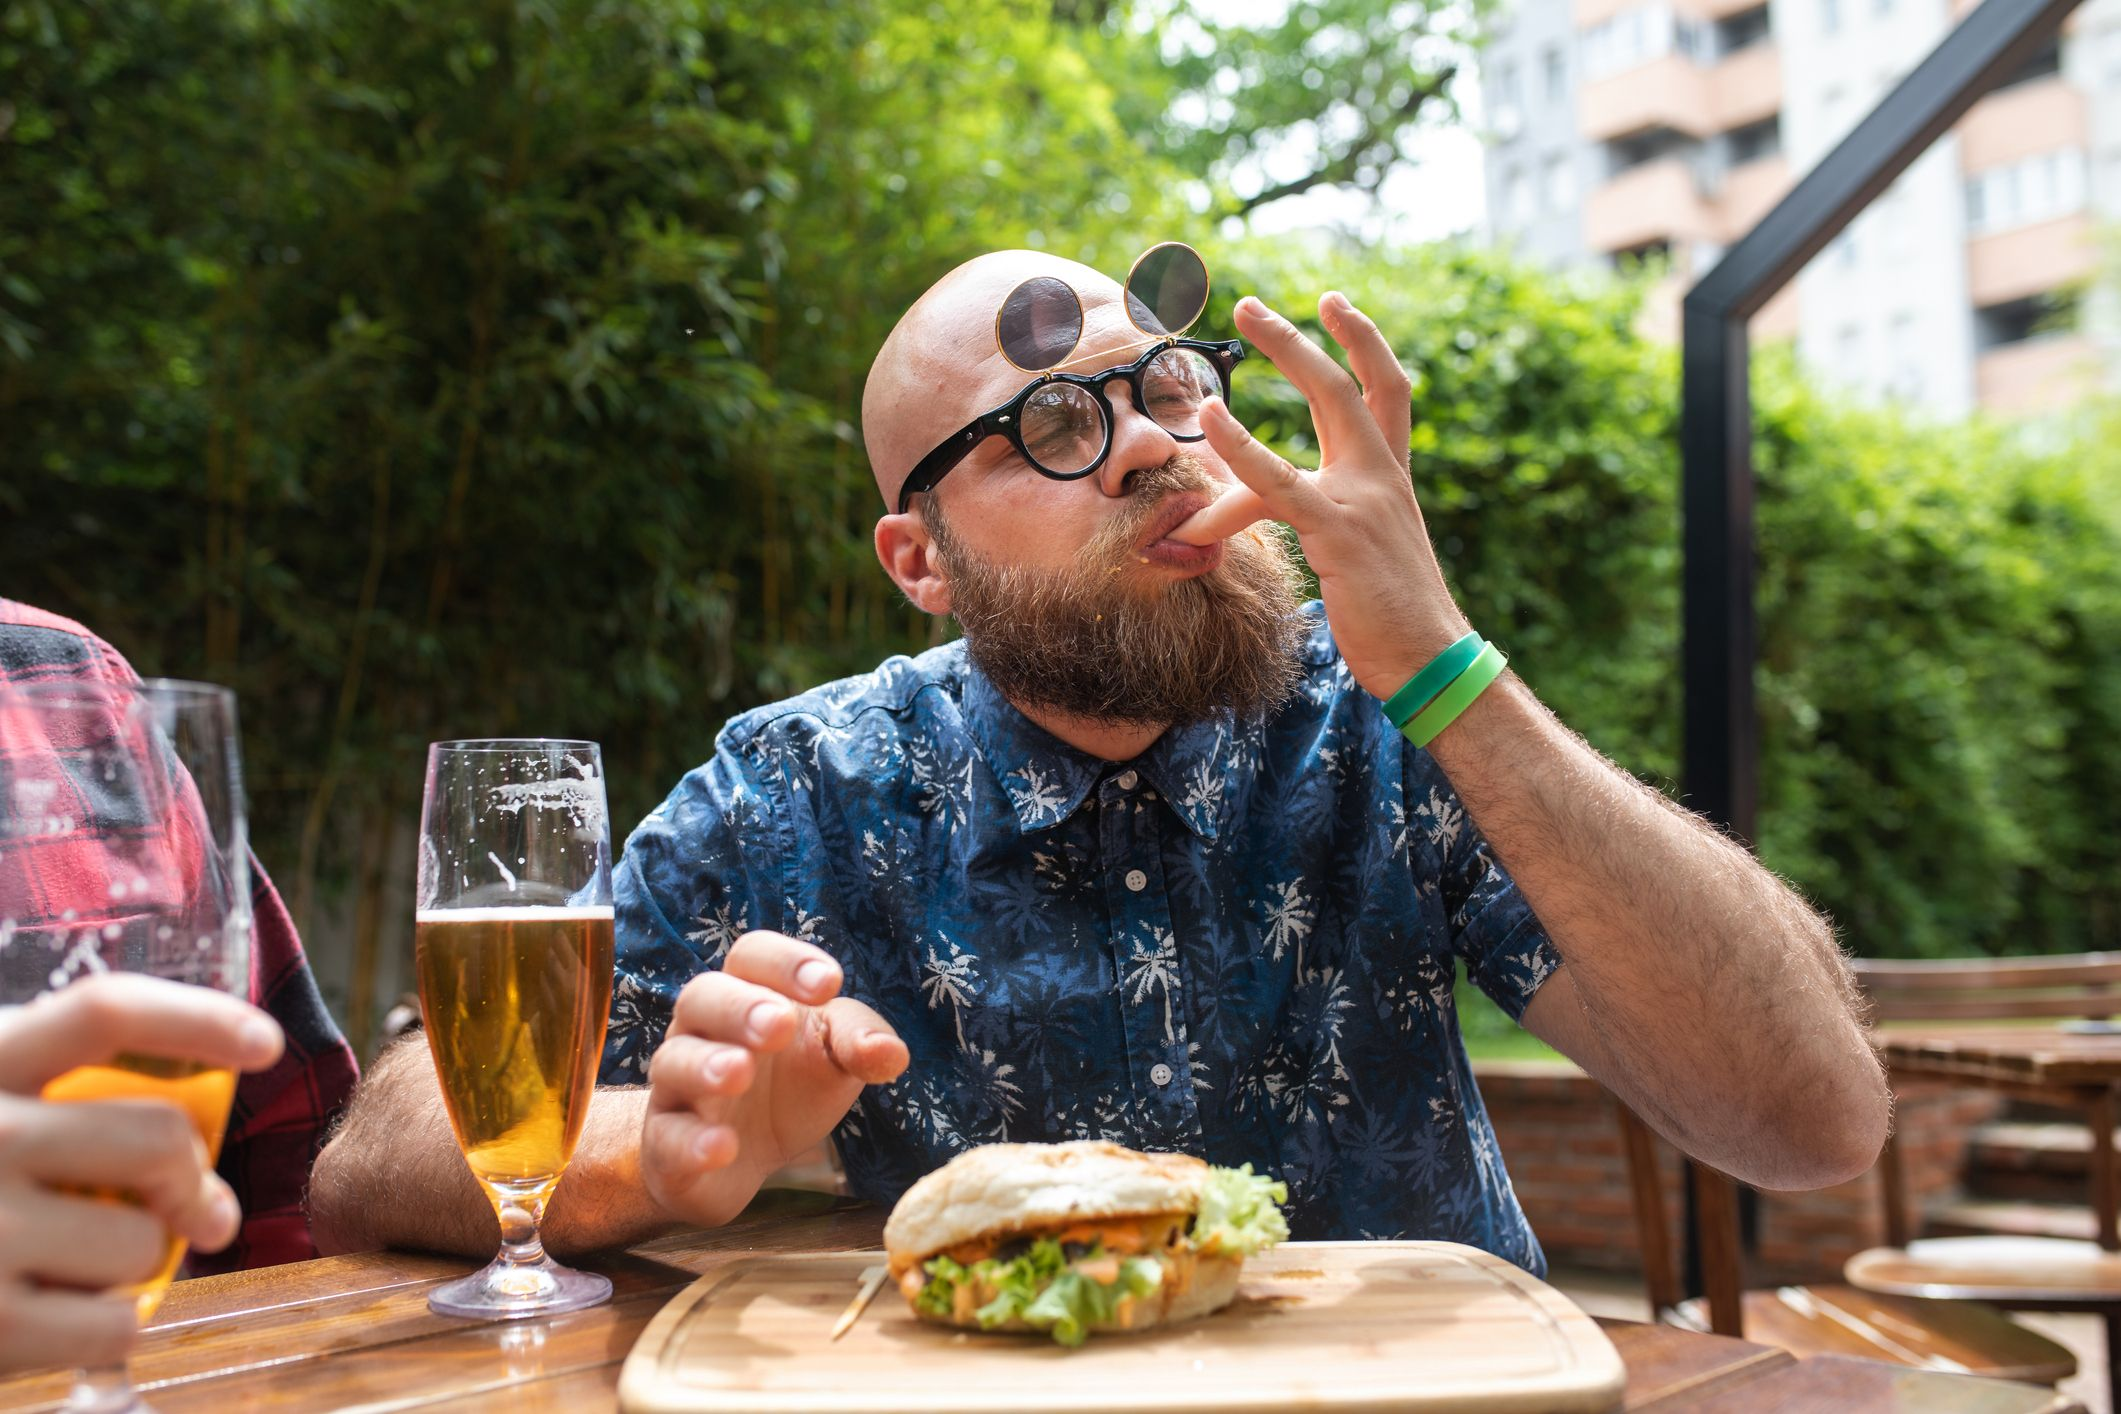 man enjoying a meal with his friend